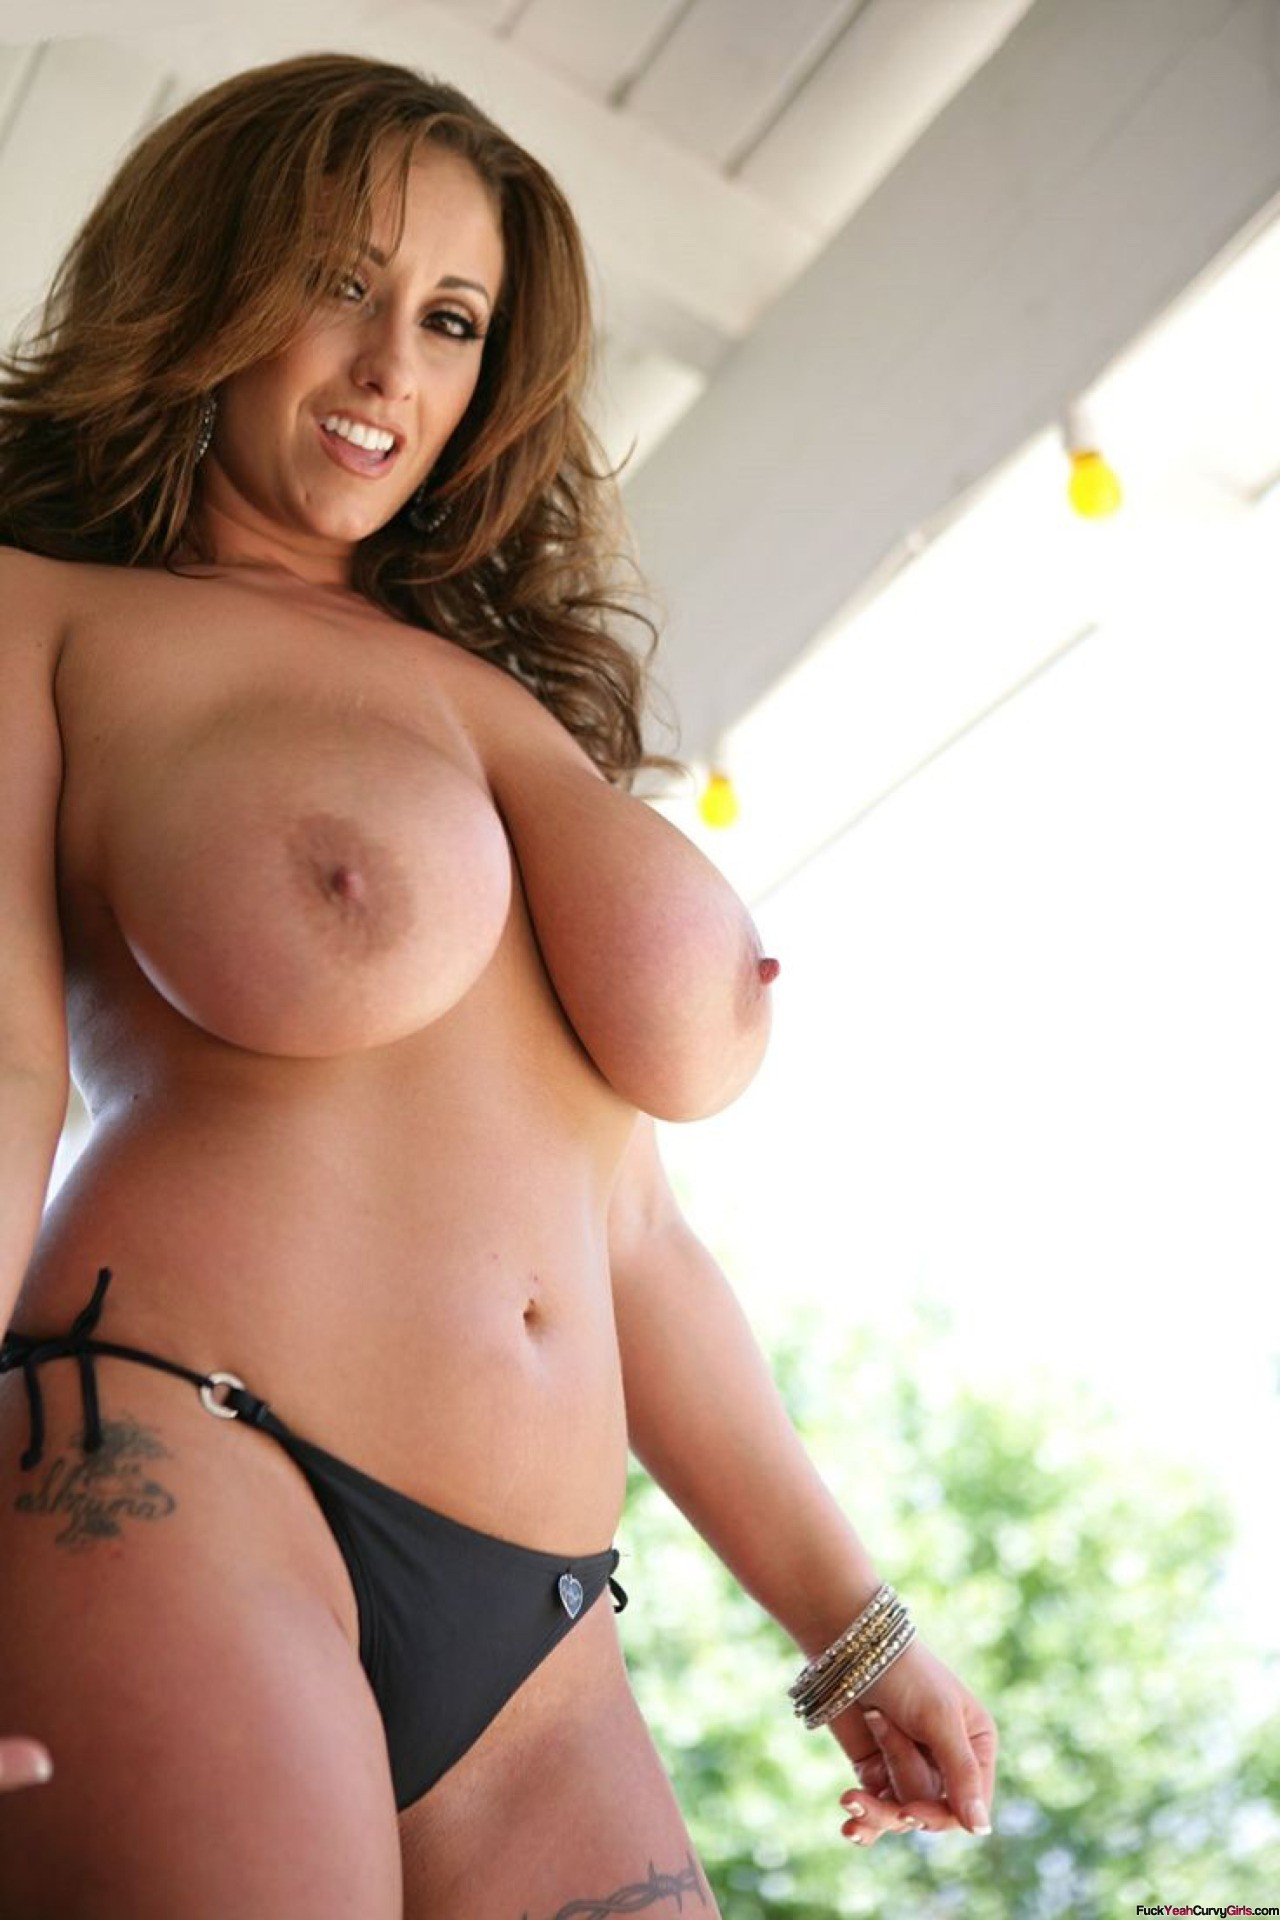 curvy thick girls nude